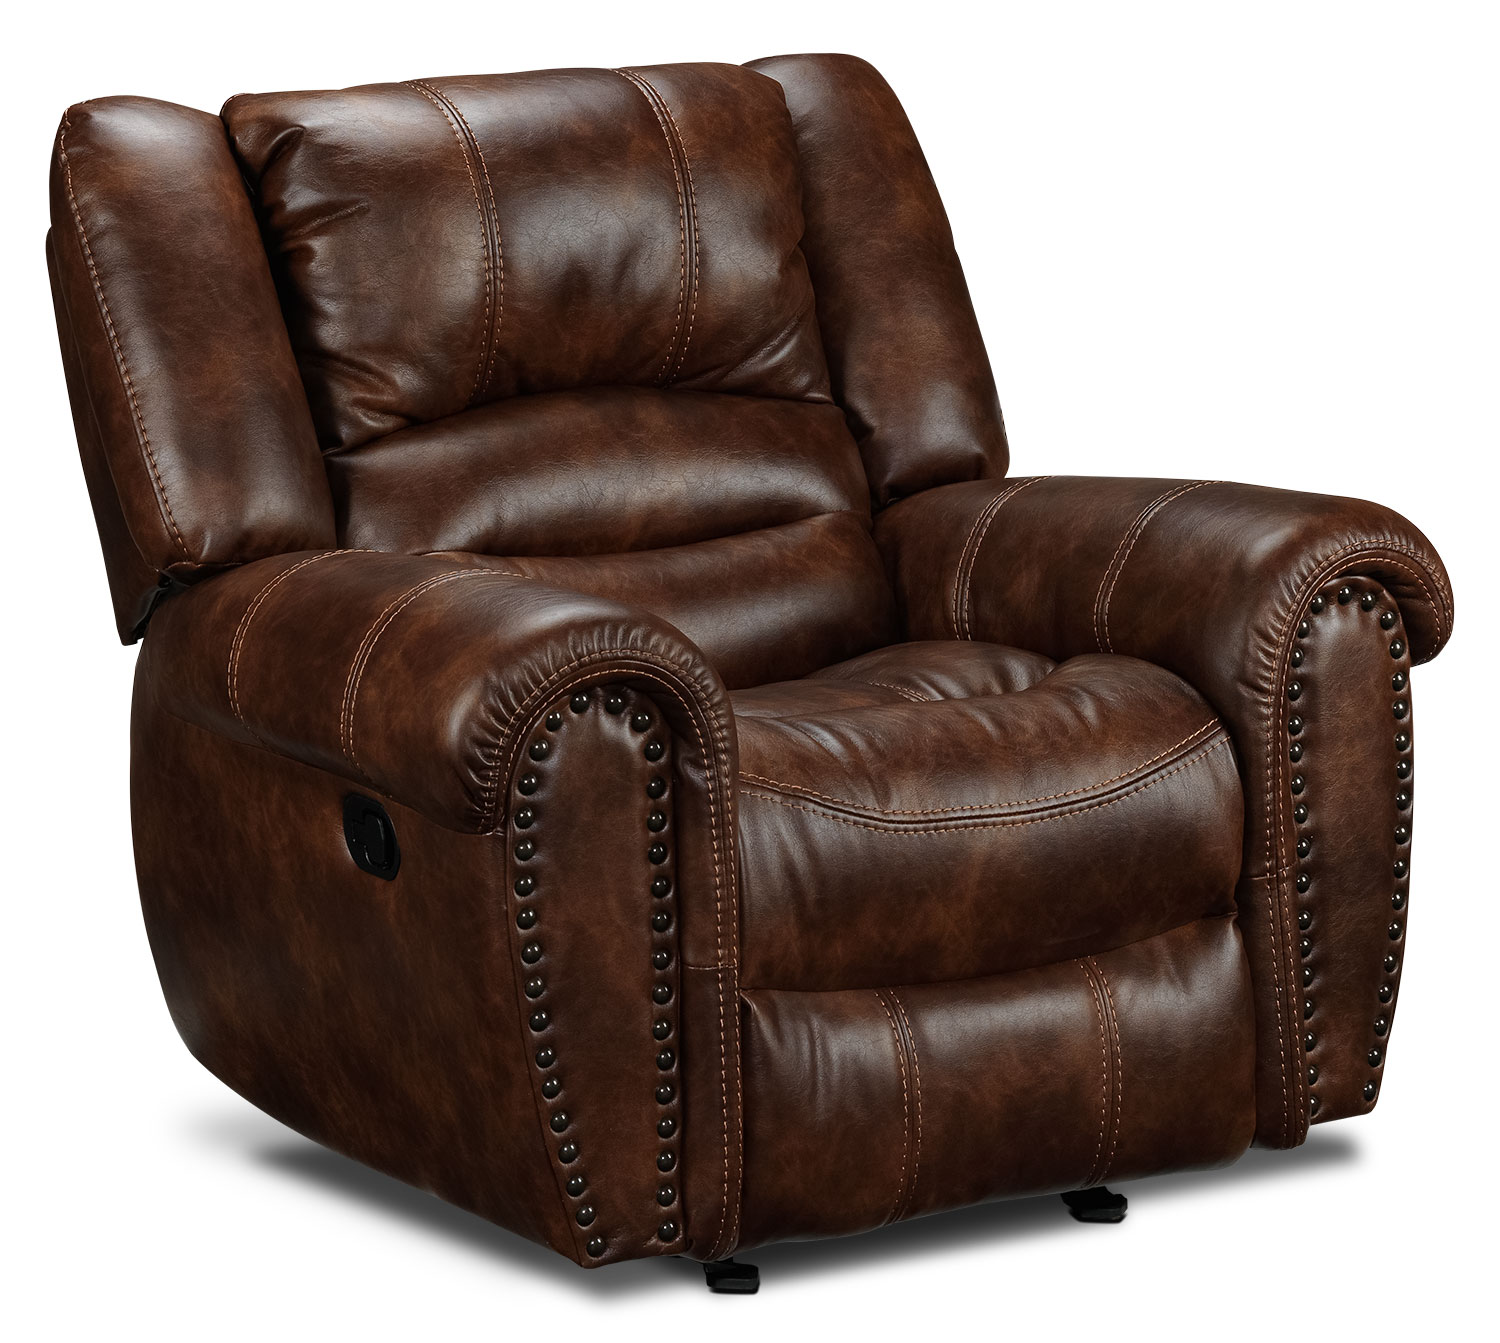 Living Room Furniture - Whitaker Glider Recliner - Brown